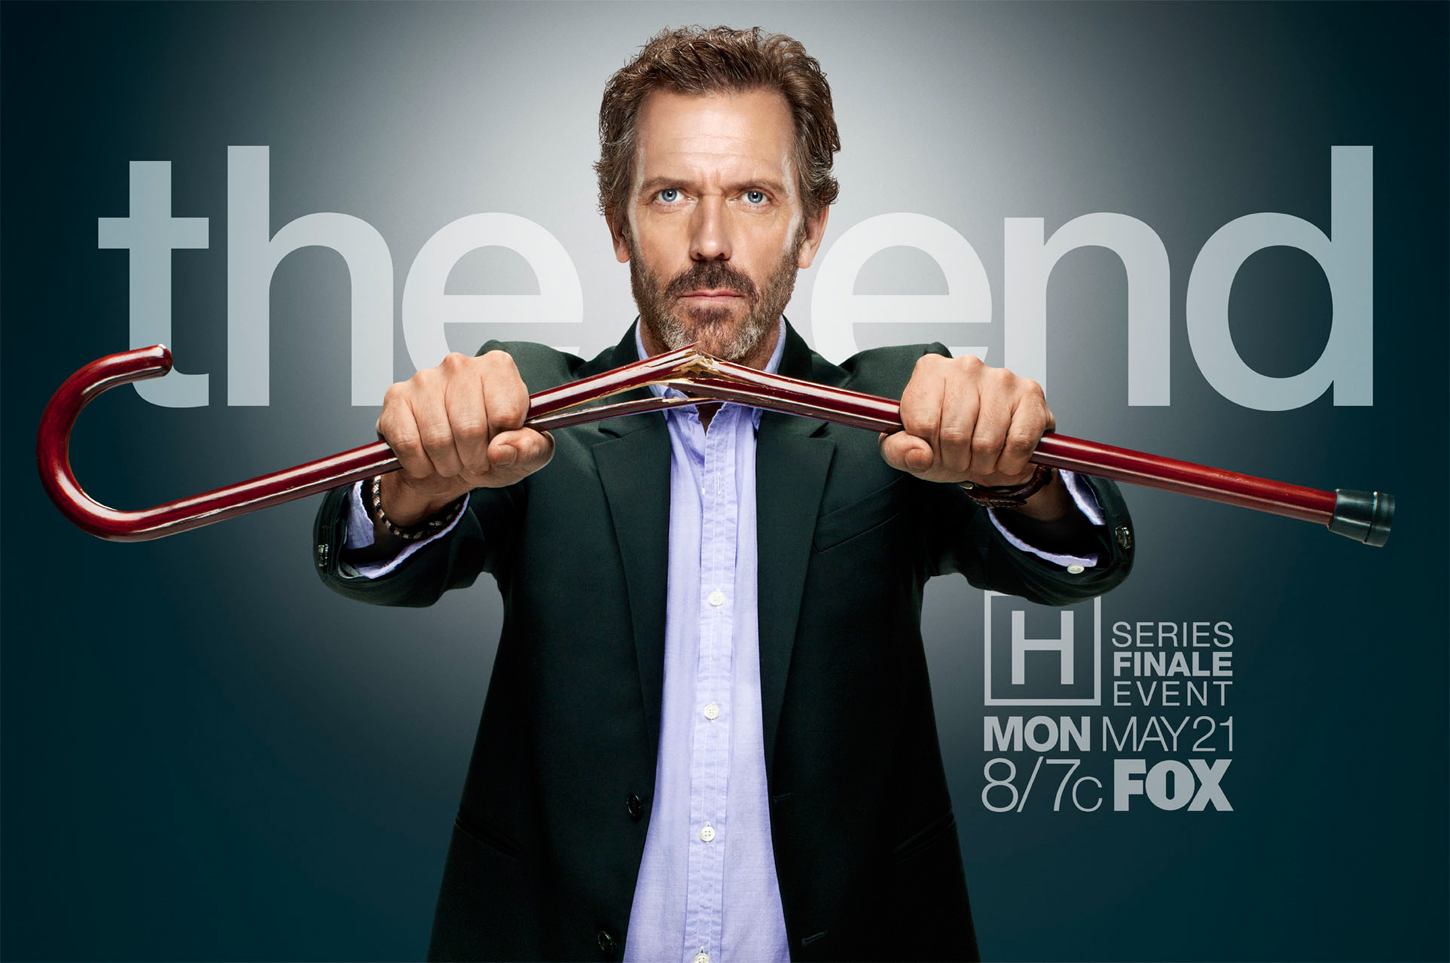 house md subtitulos descargar: